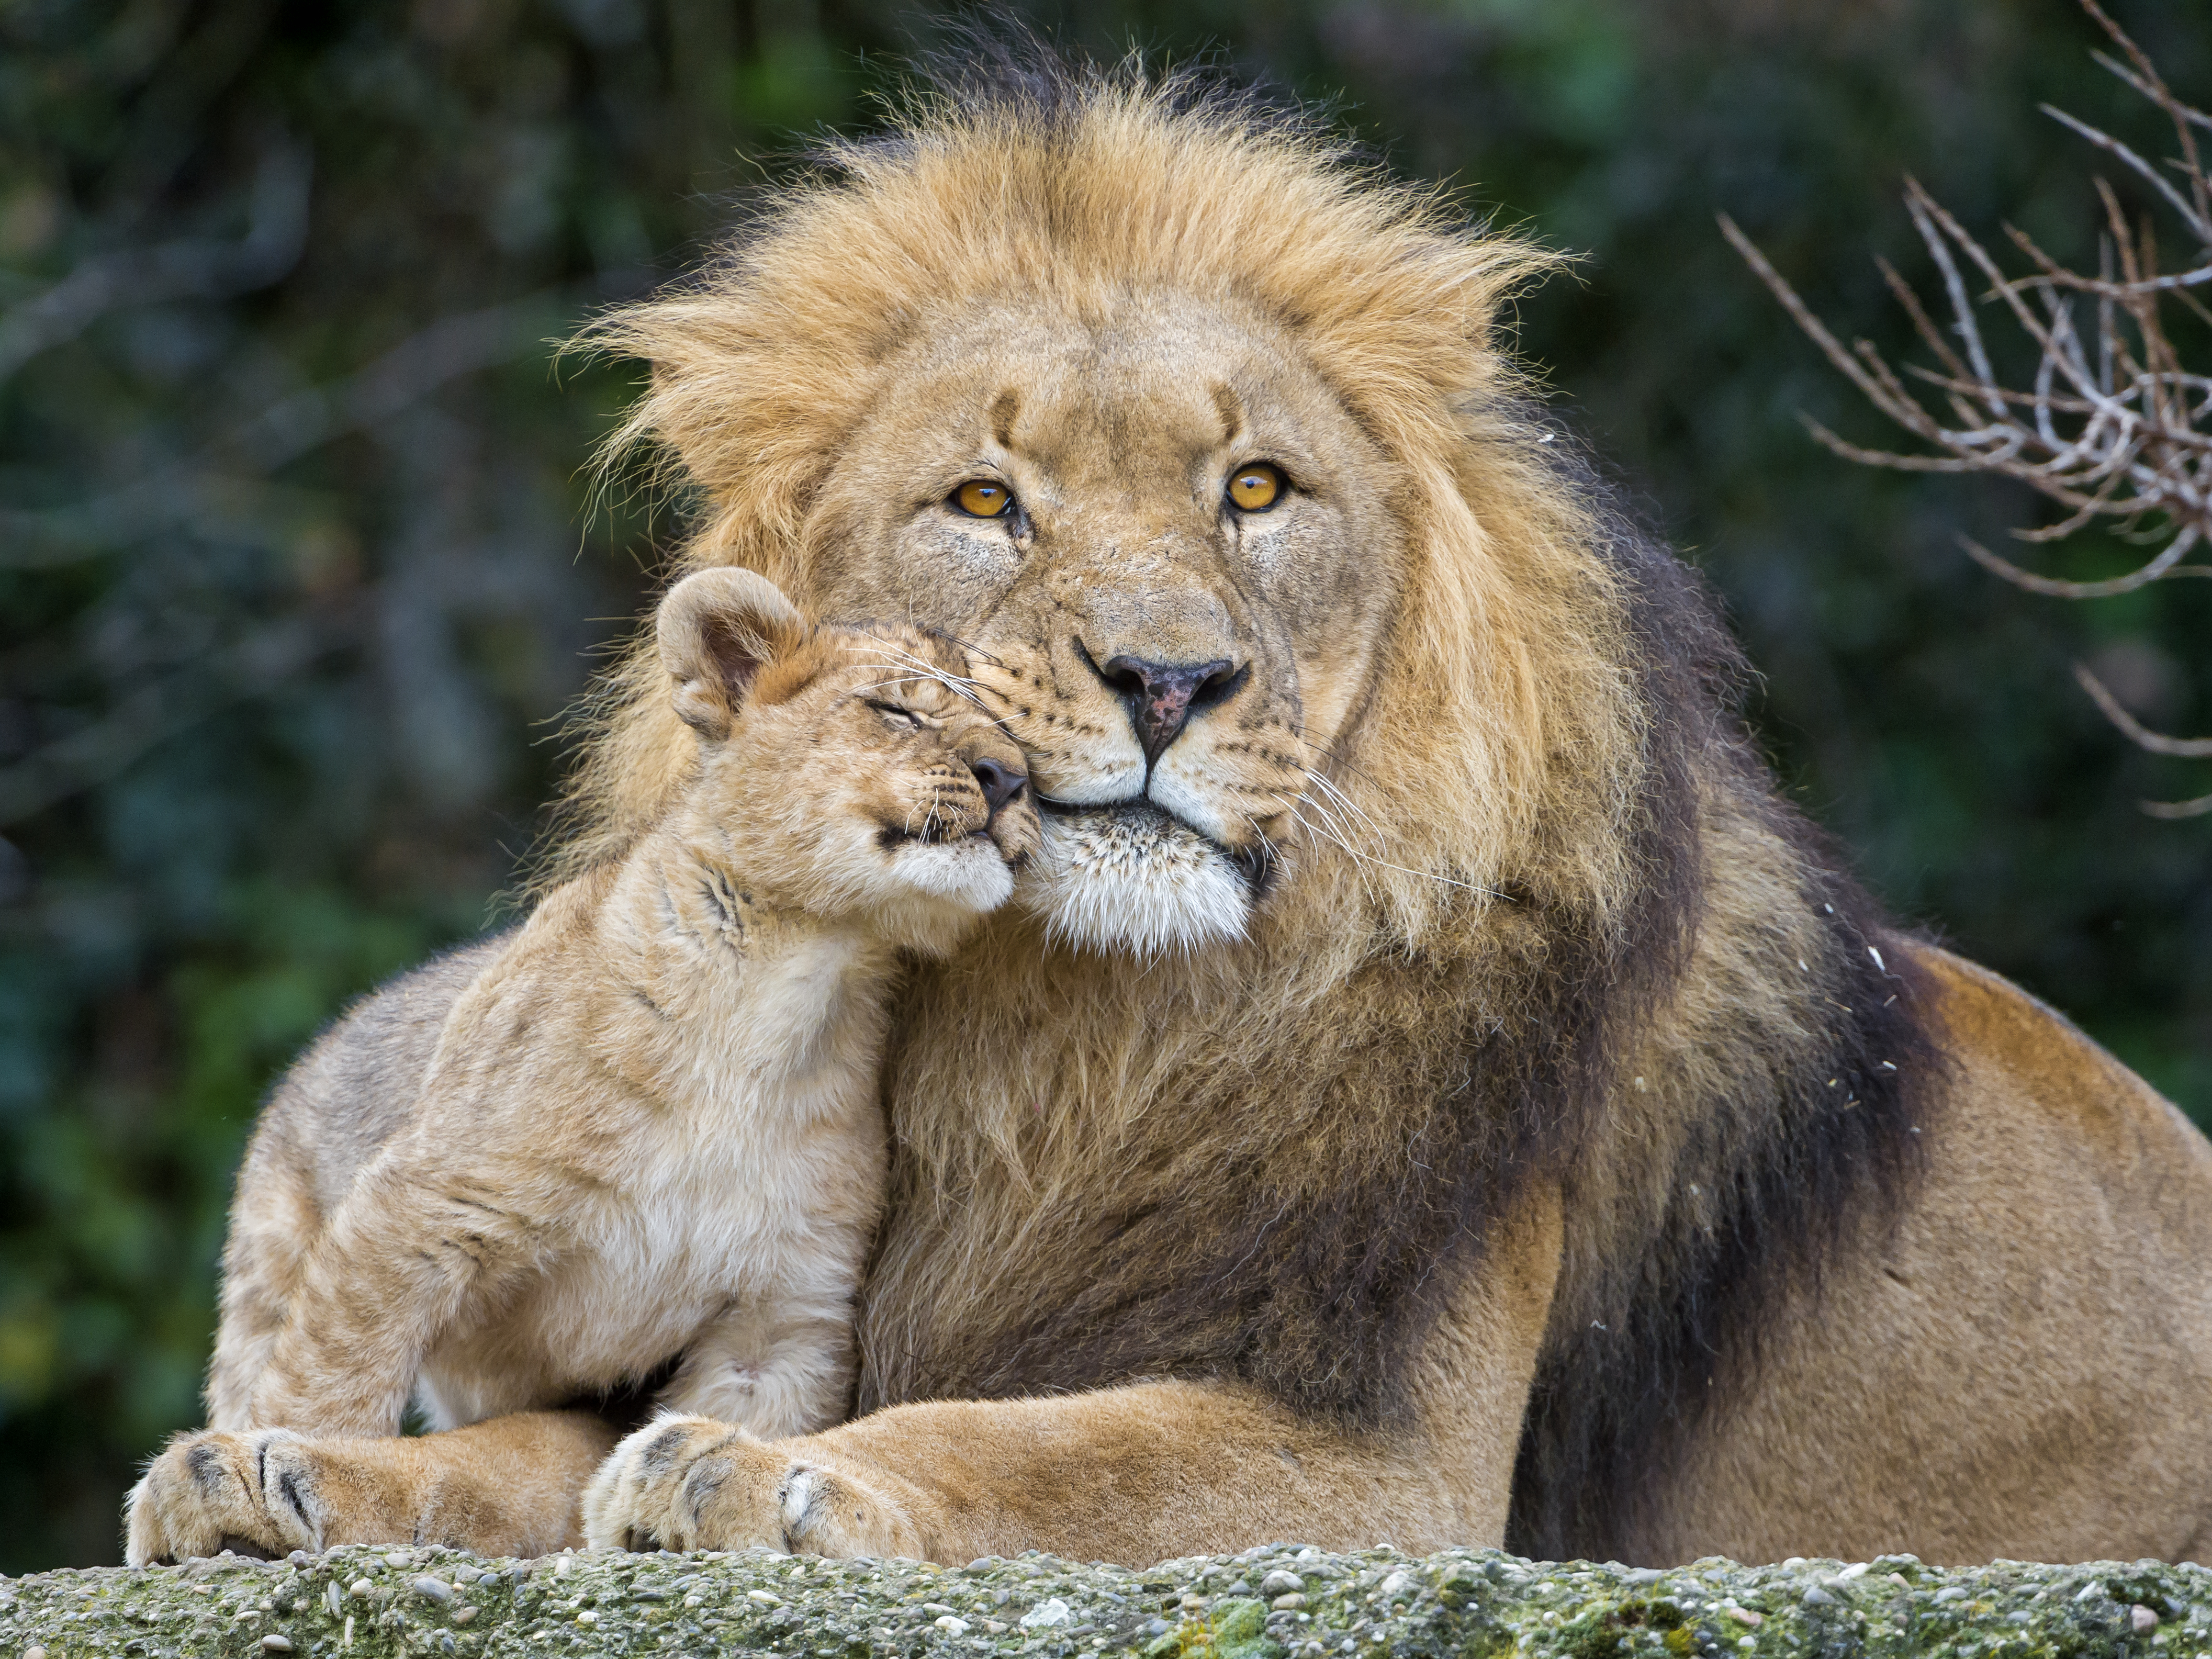 Lion And Baby Lion Hd , HD Wallpaper & Backgrounds